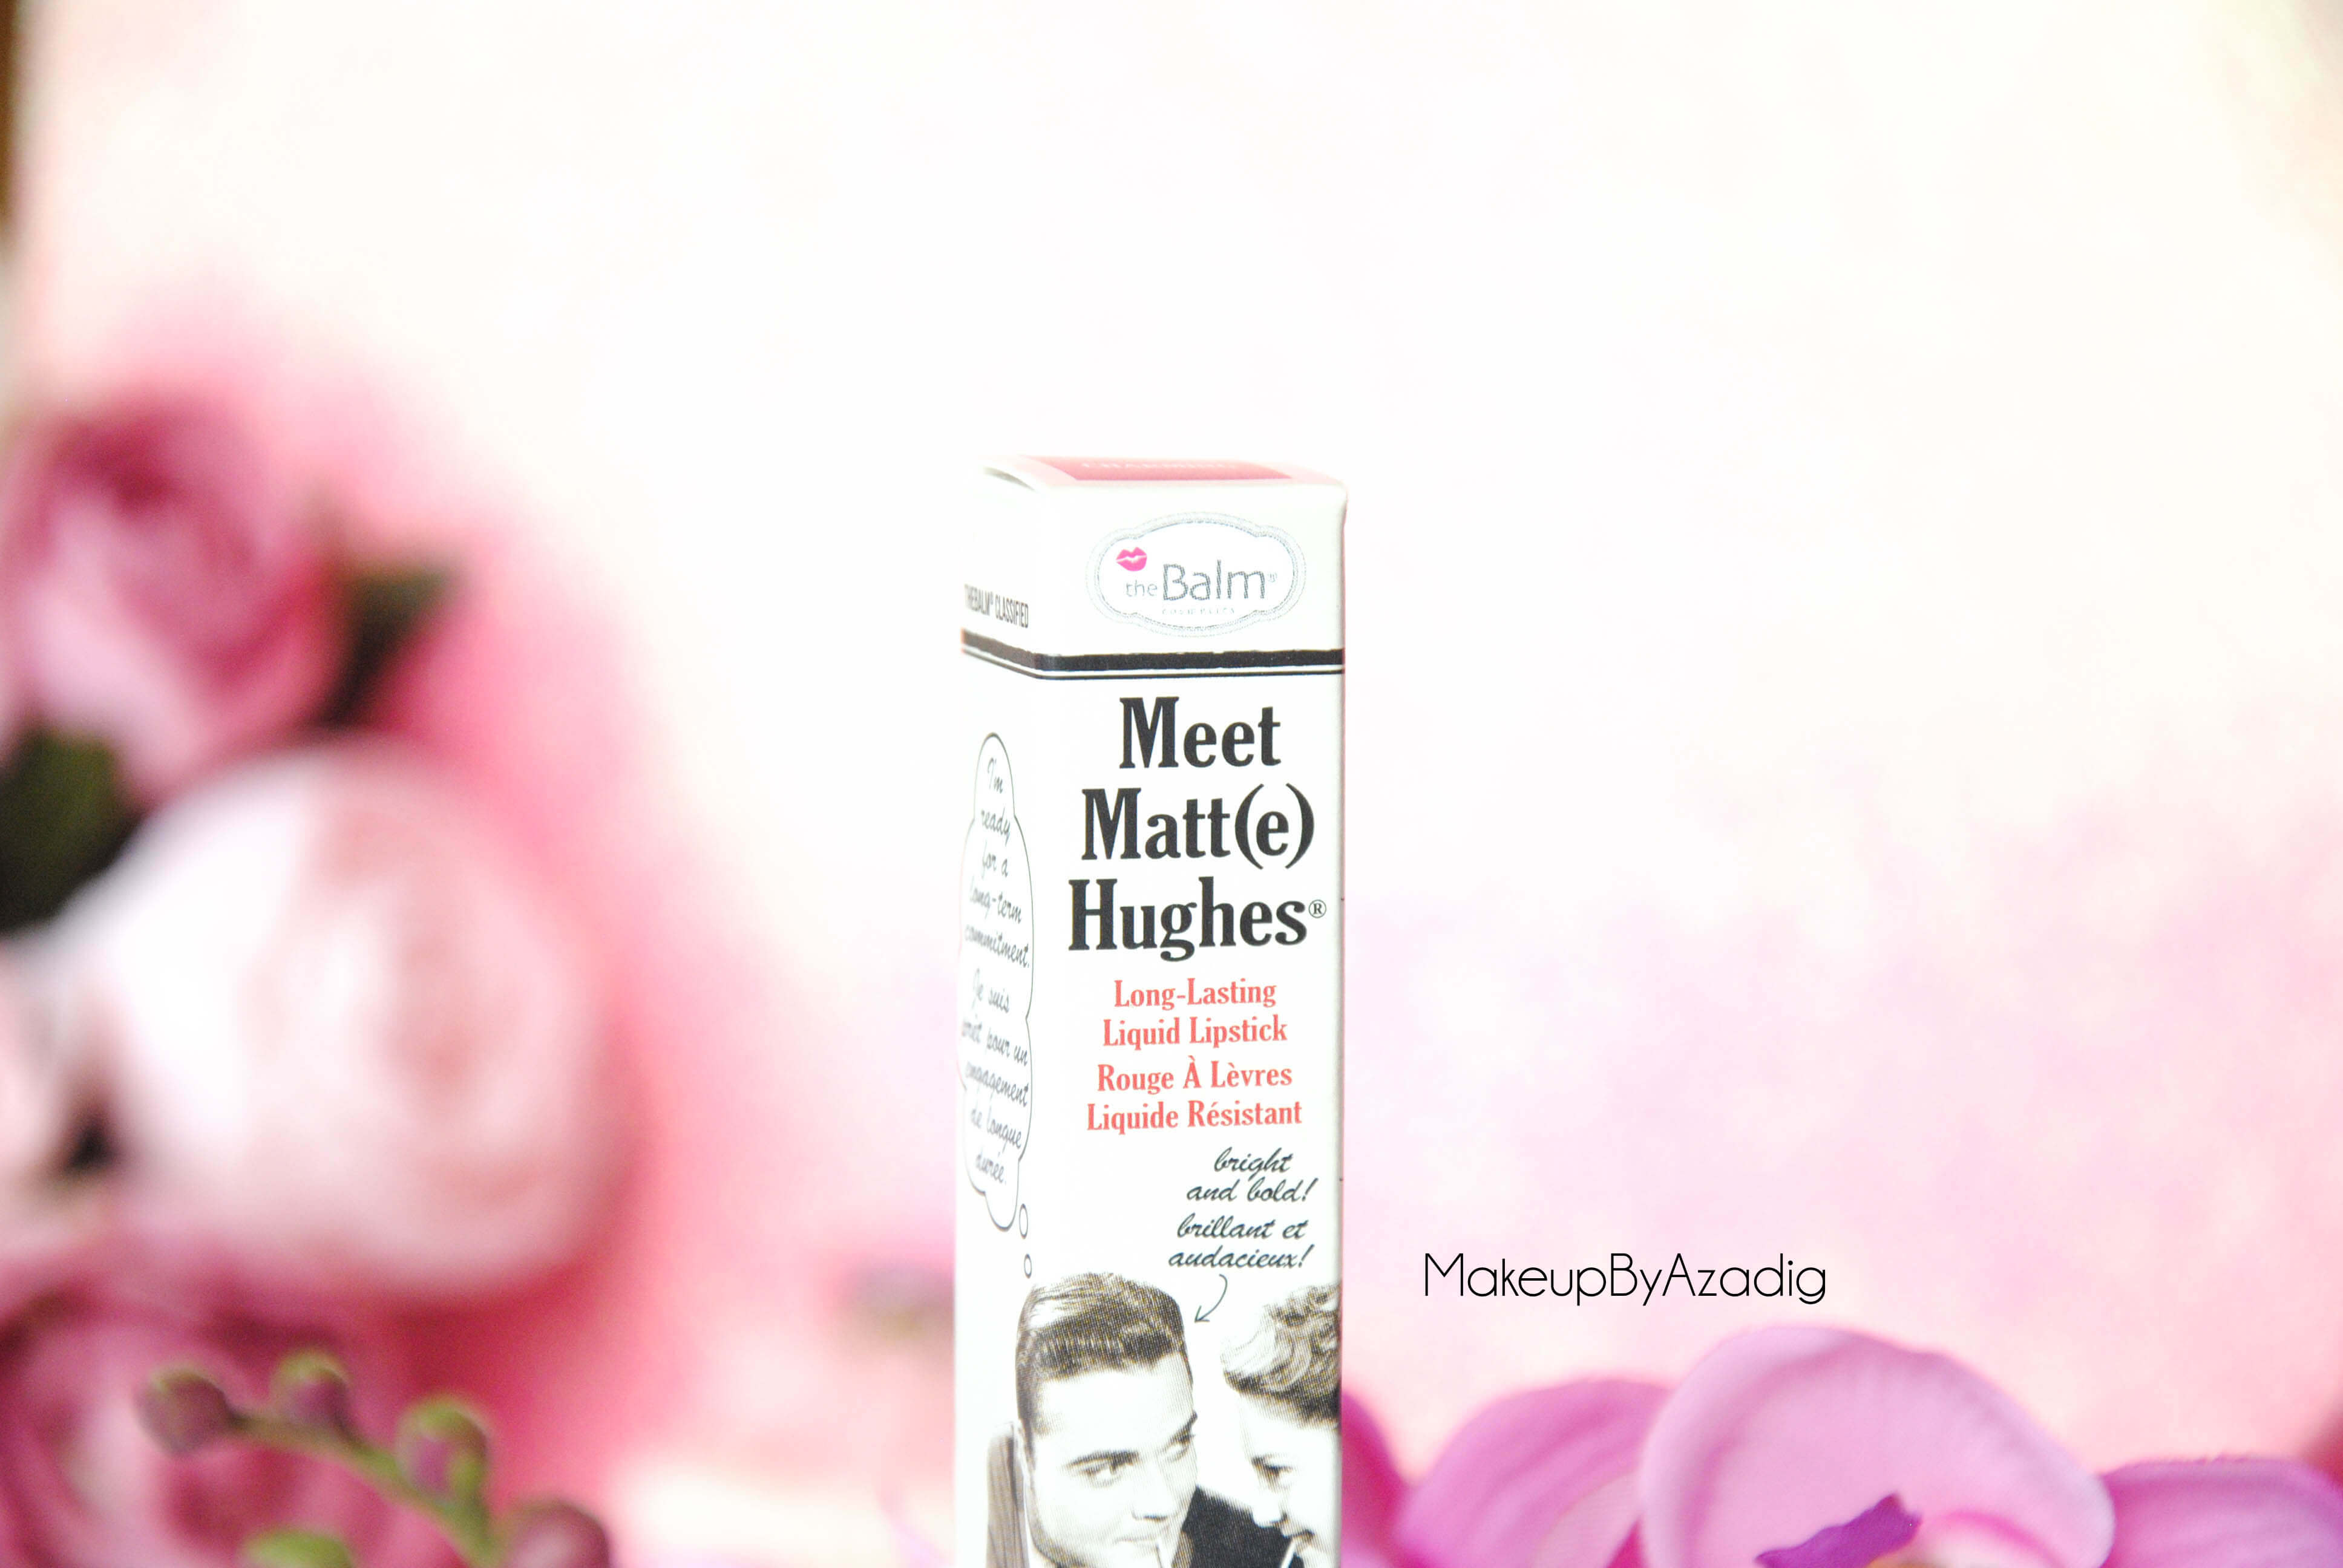 meet-matte-hughes-the-balm-charming-makeupbyazadig-troyes-paris-rouge-levres-liquide-swatch-review-avis-lasting